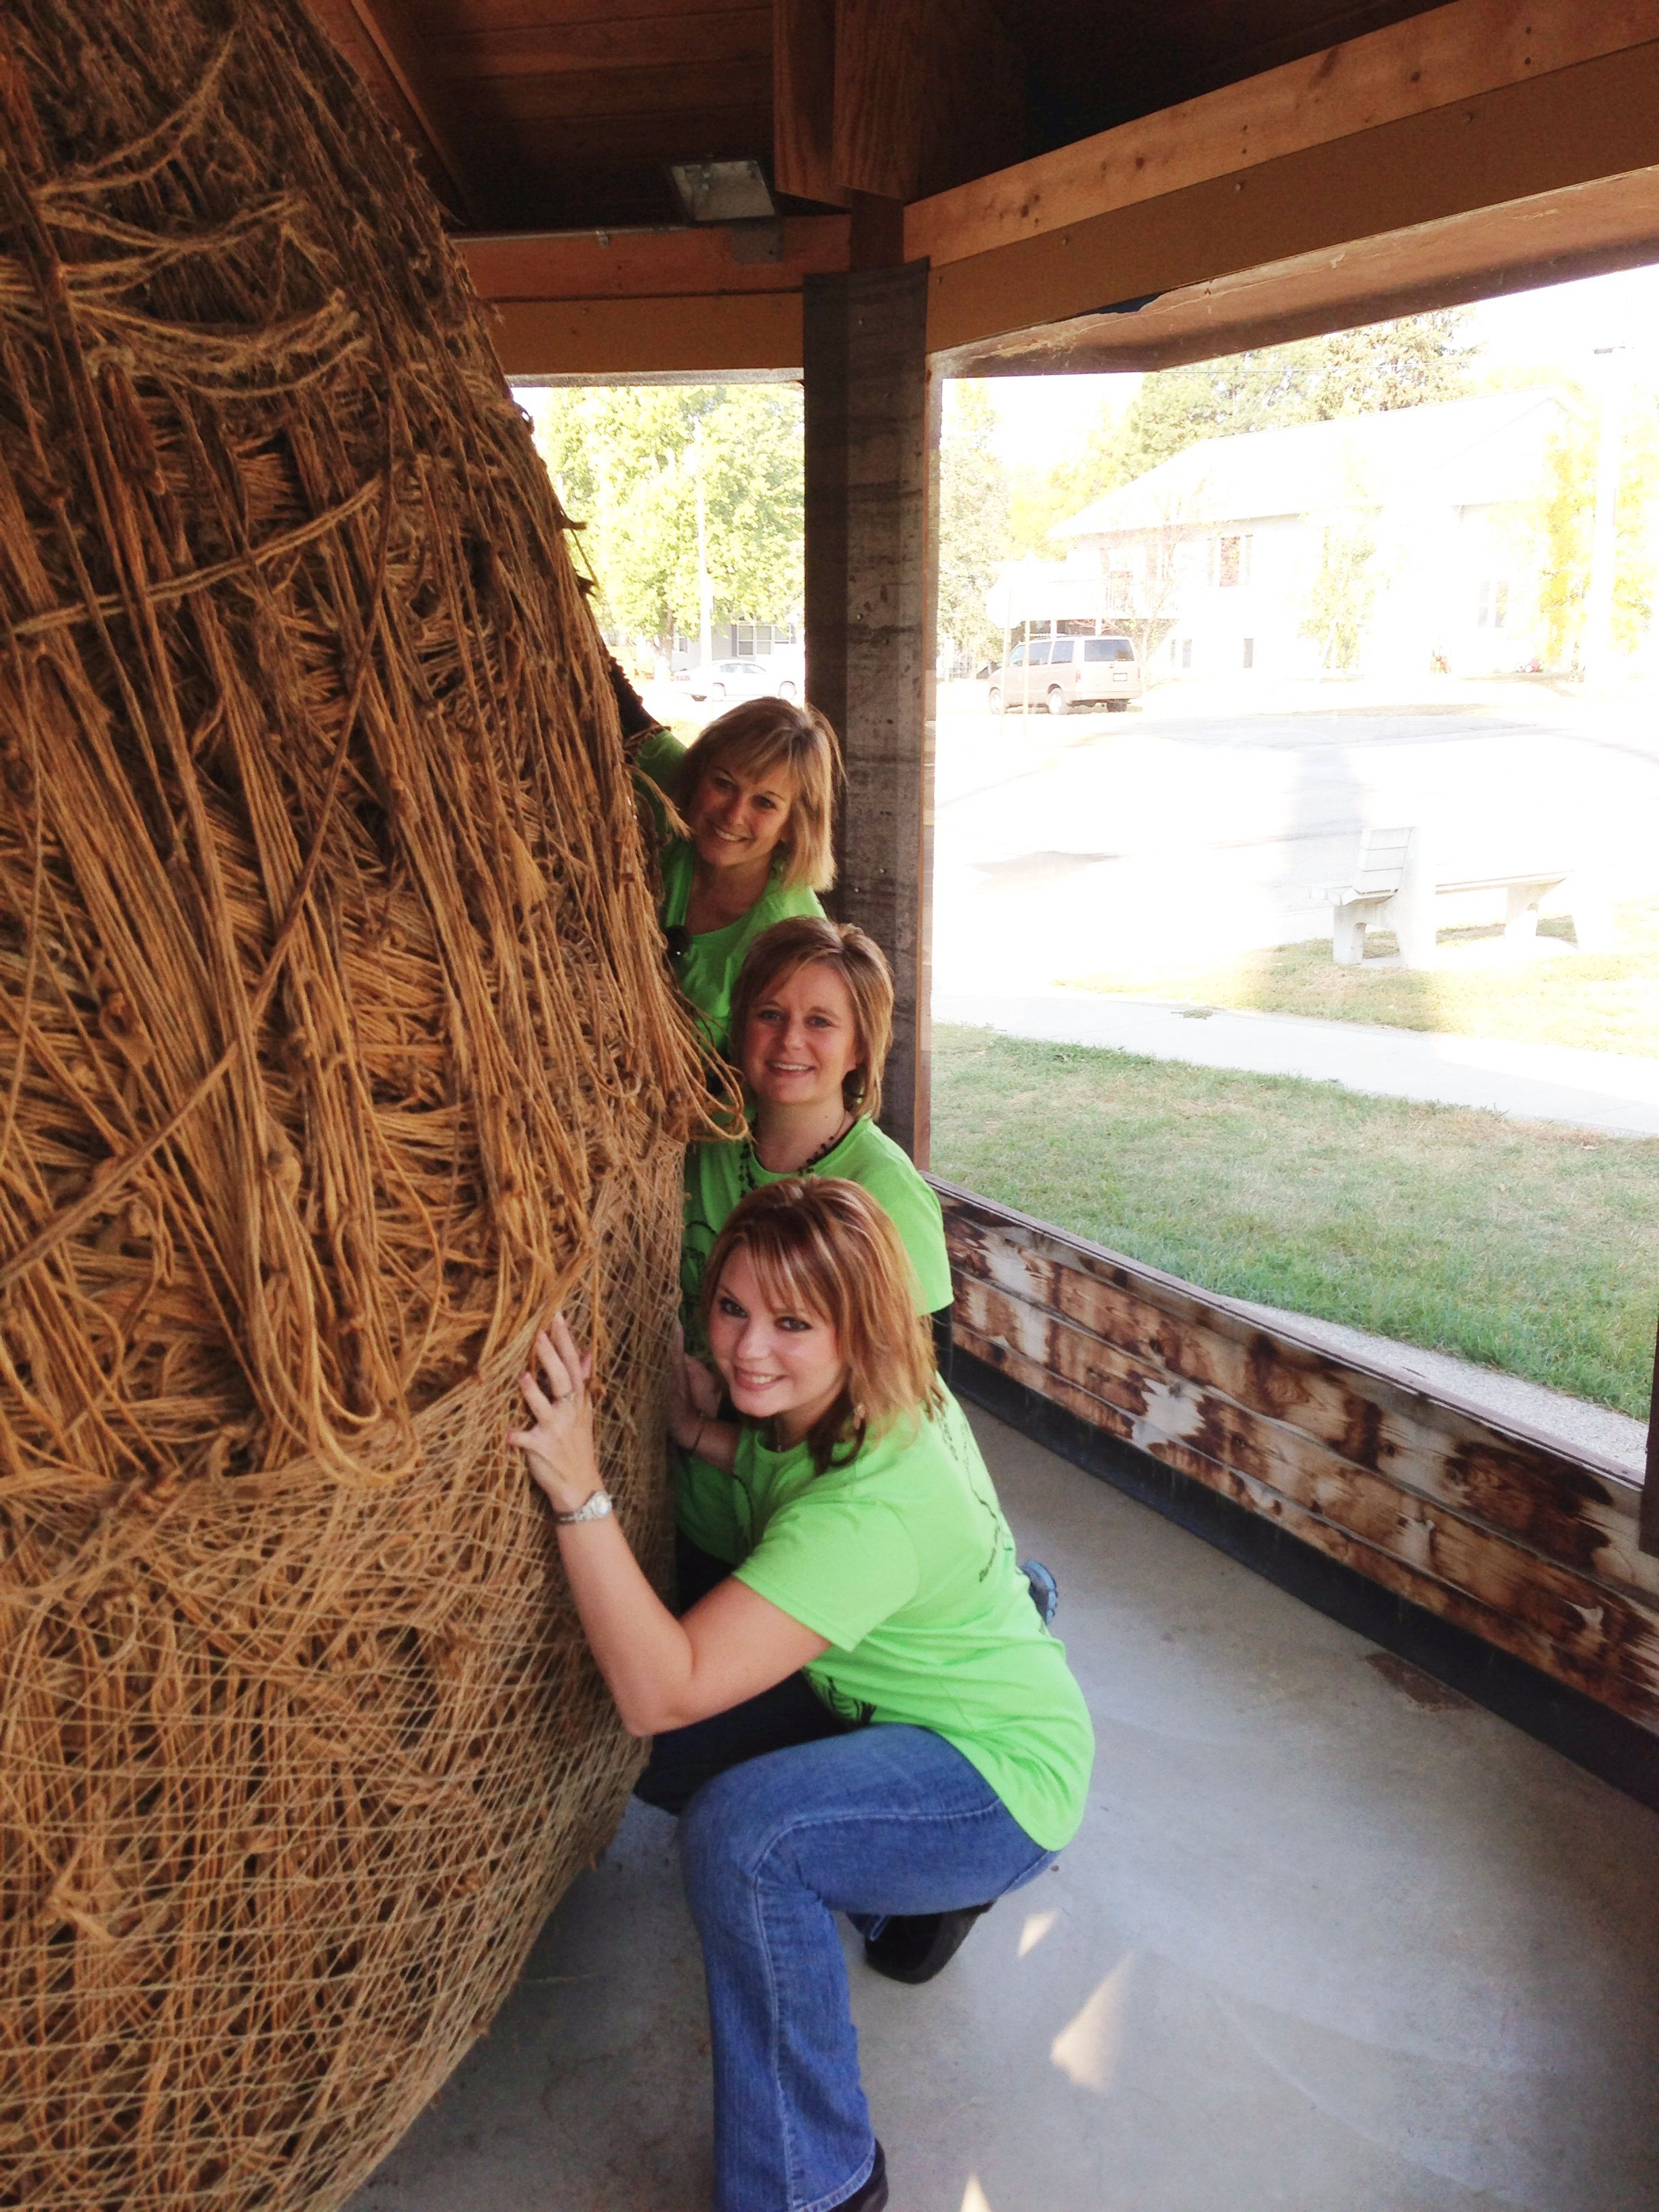 Biggest Ball of Twine rolled by one man! Darwin, MN made famous by Weird Al